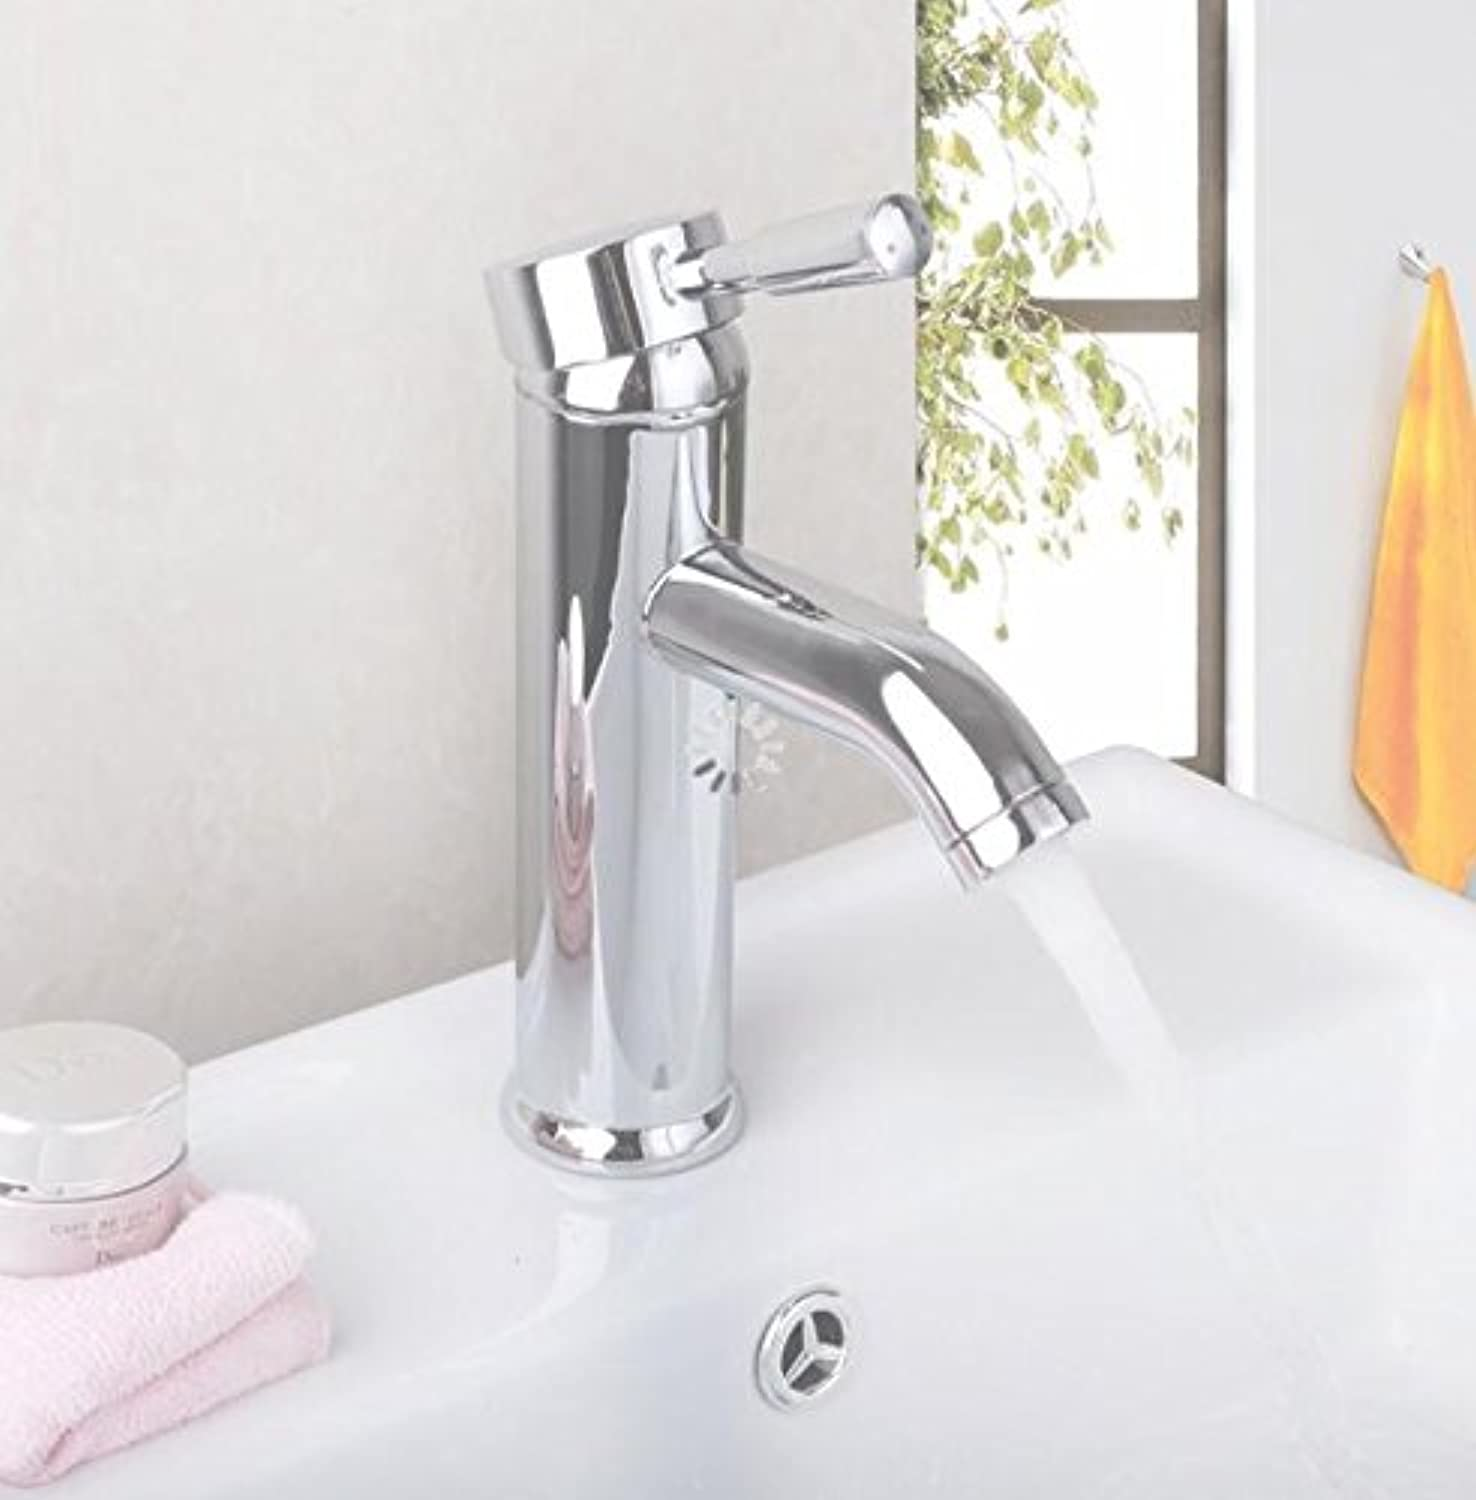 Makej Chrome Plated Basin Faucet Single Handle Hot and Cold Water Bathroom Tap Kitchen Bathroom Faucet